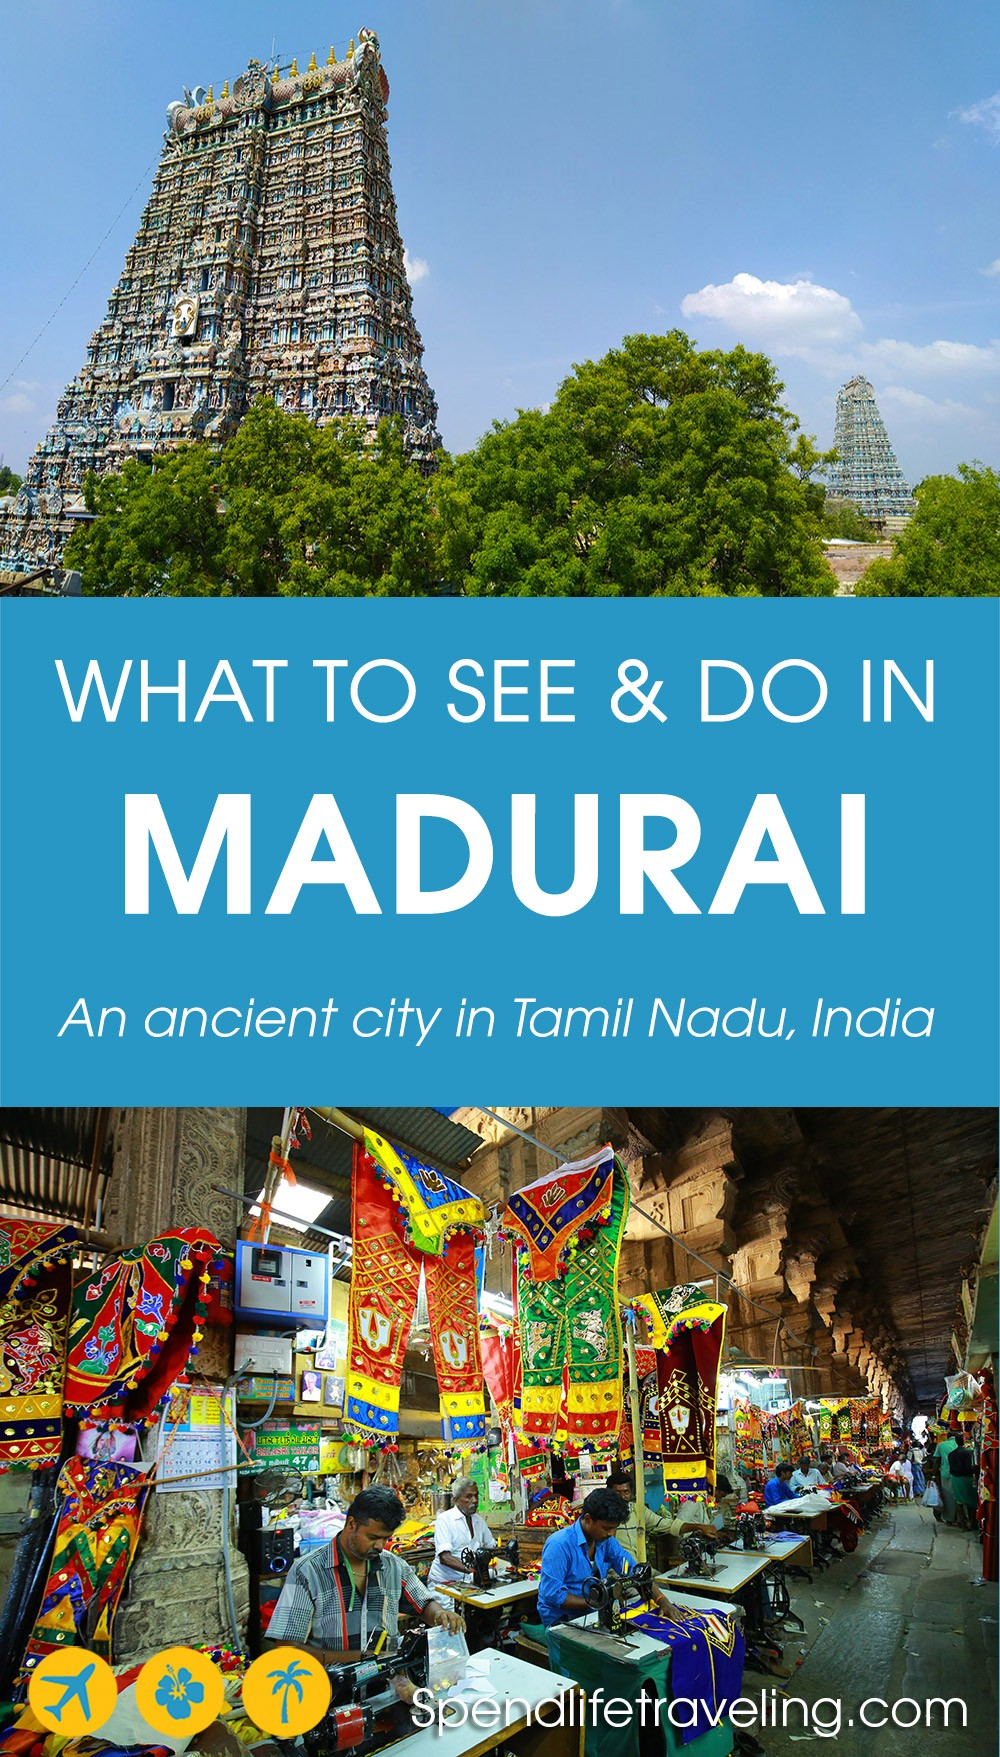 A practical guide for what not to miss in #Madurai, Tamil Nadu, India. #Tamilnadu #incredibleIndia